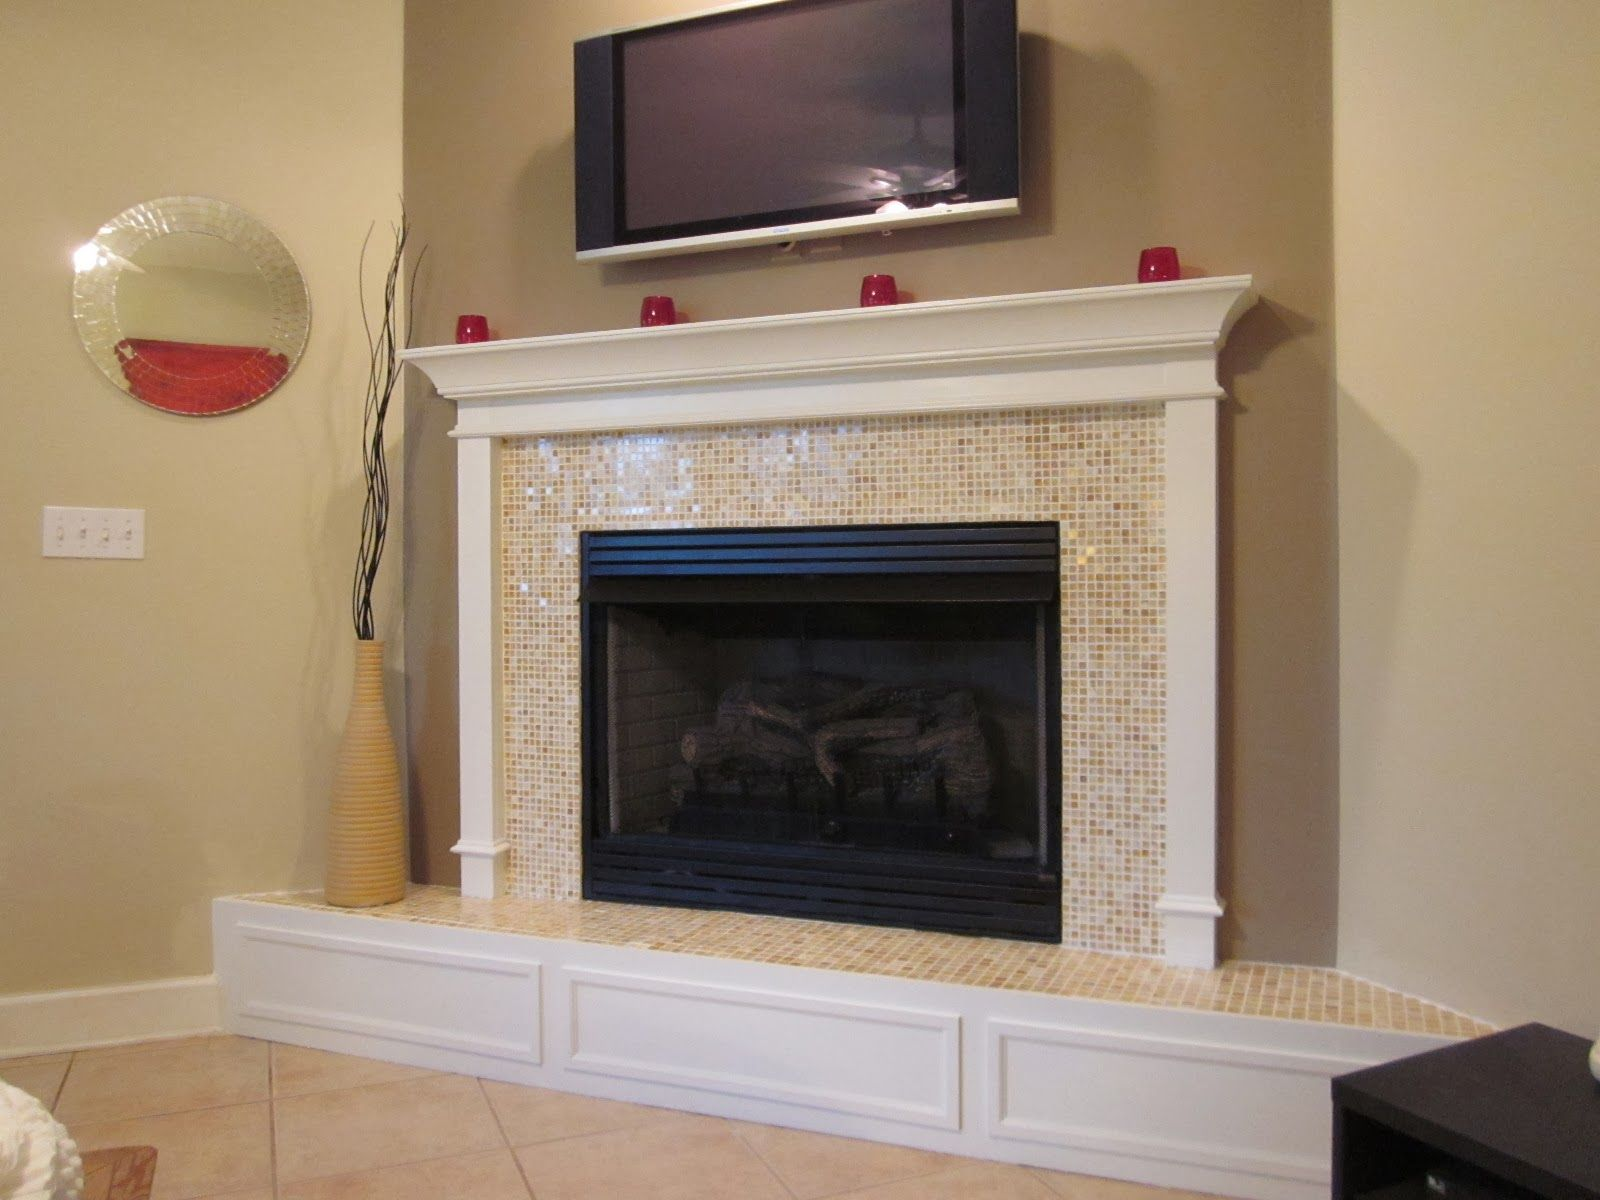 Black Marble Fireplace Hearth: White Marble Tile Fireplace, Black ...